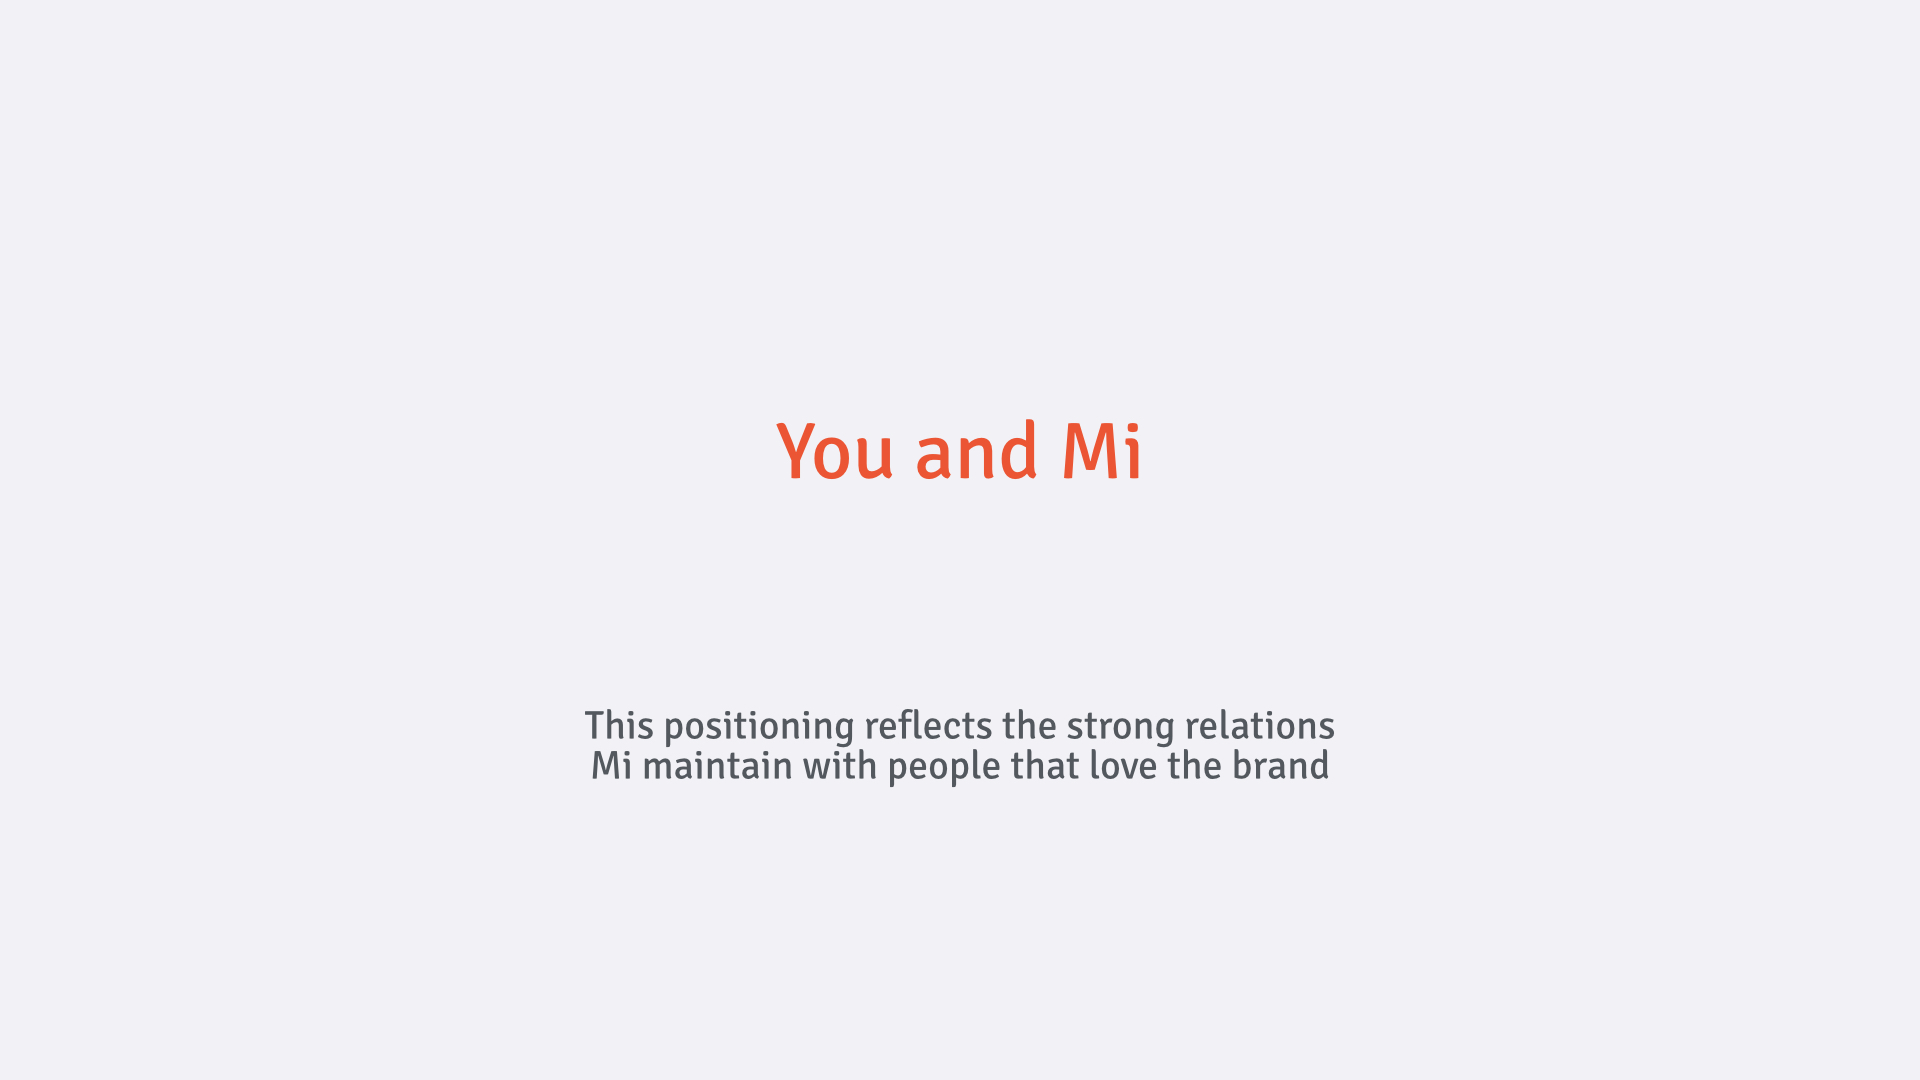 XIAOMI-positioning.004